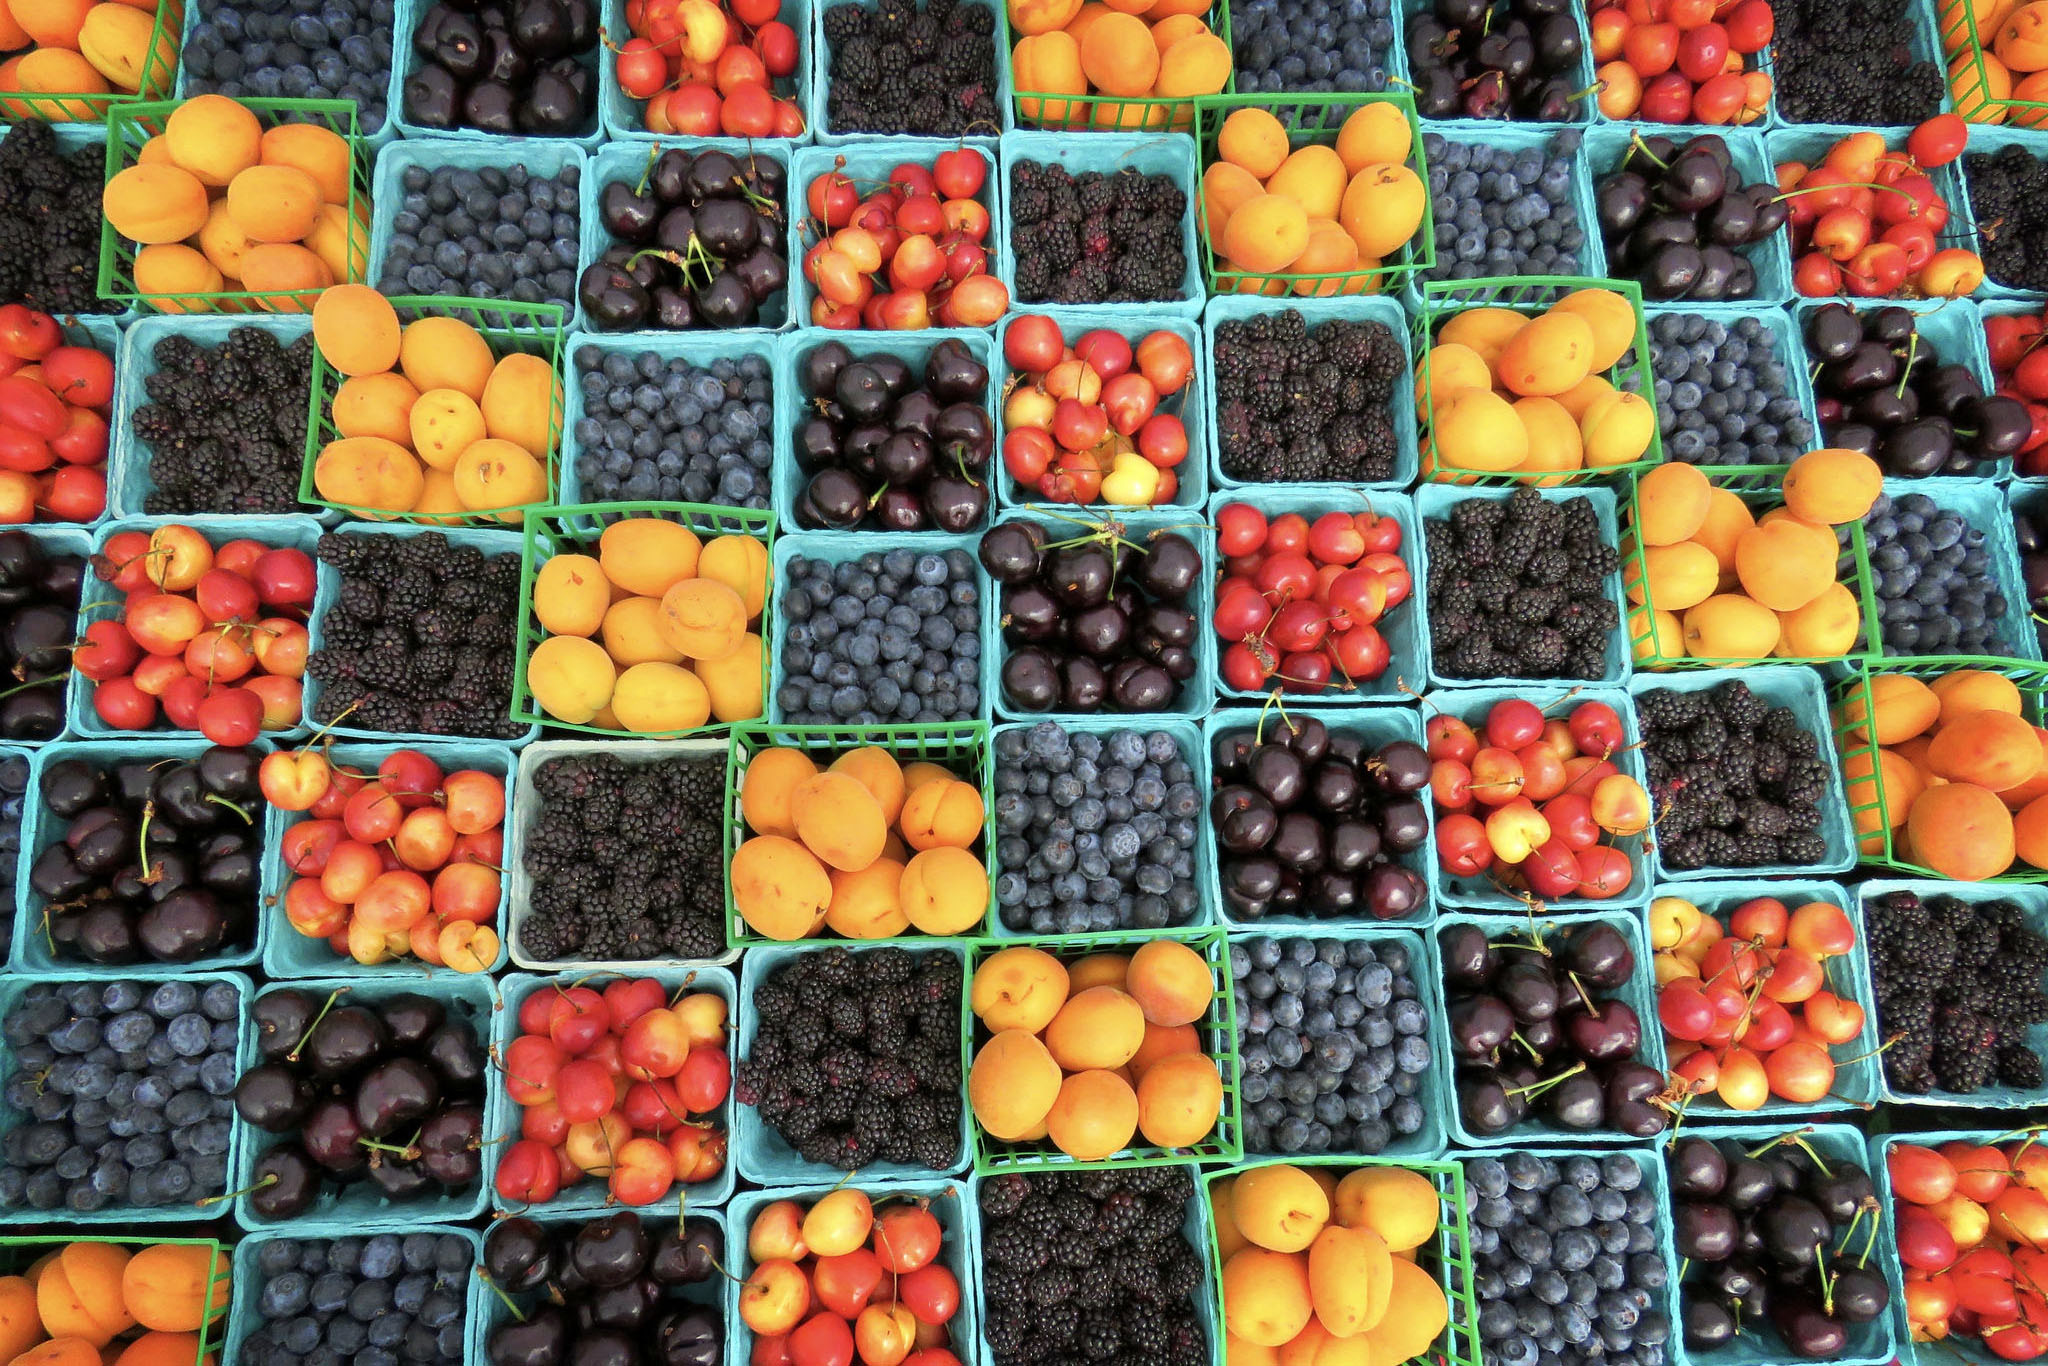 Antioxidants are found in many of the healthy foods you eat like blueberries, apricots, and seeds. (Bennilover, Flickr)